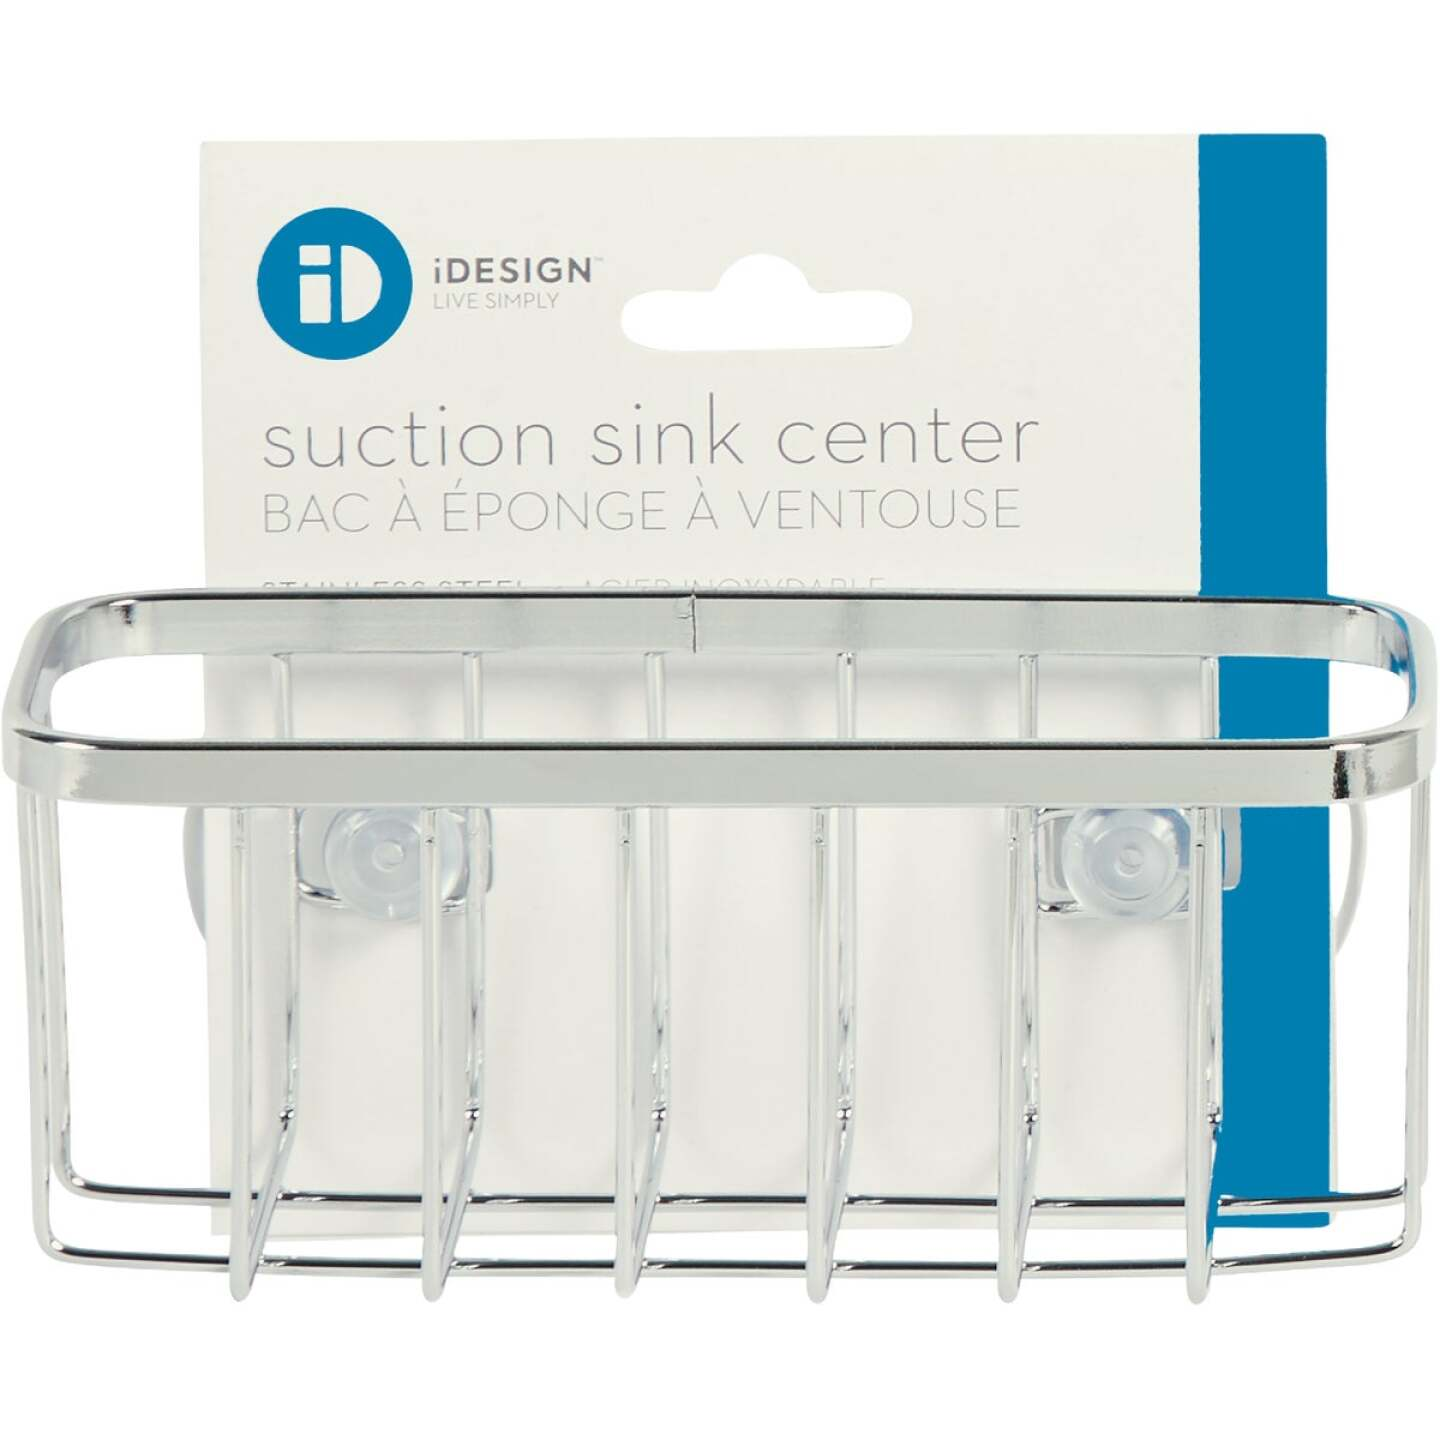 InterDesign Sinkworks Suction Sink Center Sponge Holder Image 2